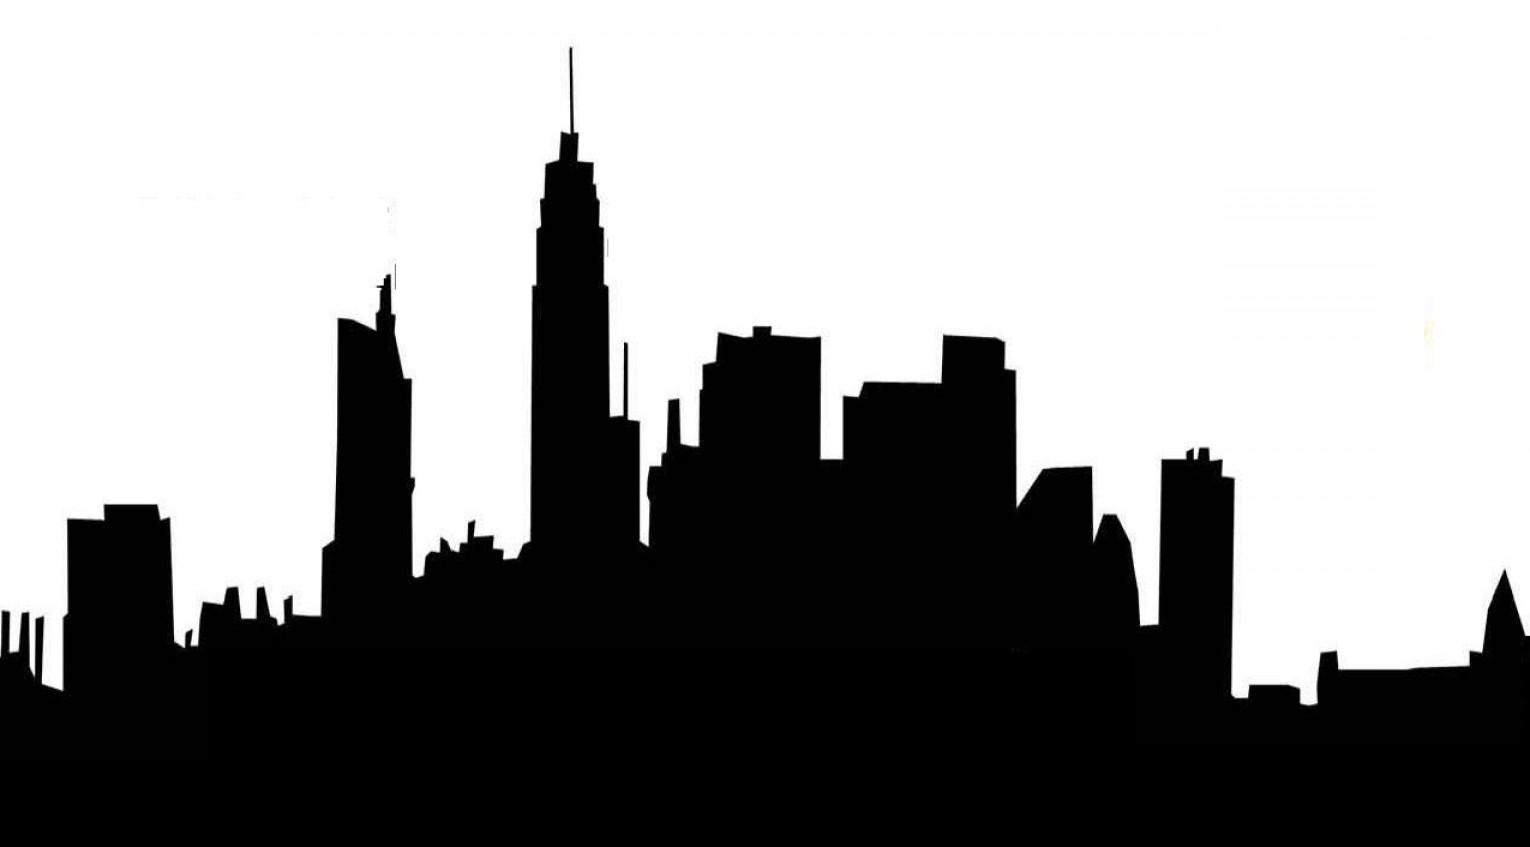 Hollywood Skyline Silhouette Vector: Skyline Silhouette Png At Getdrawings Com Free For